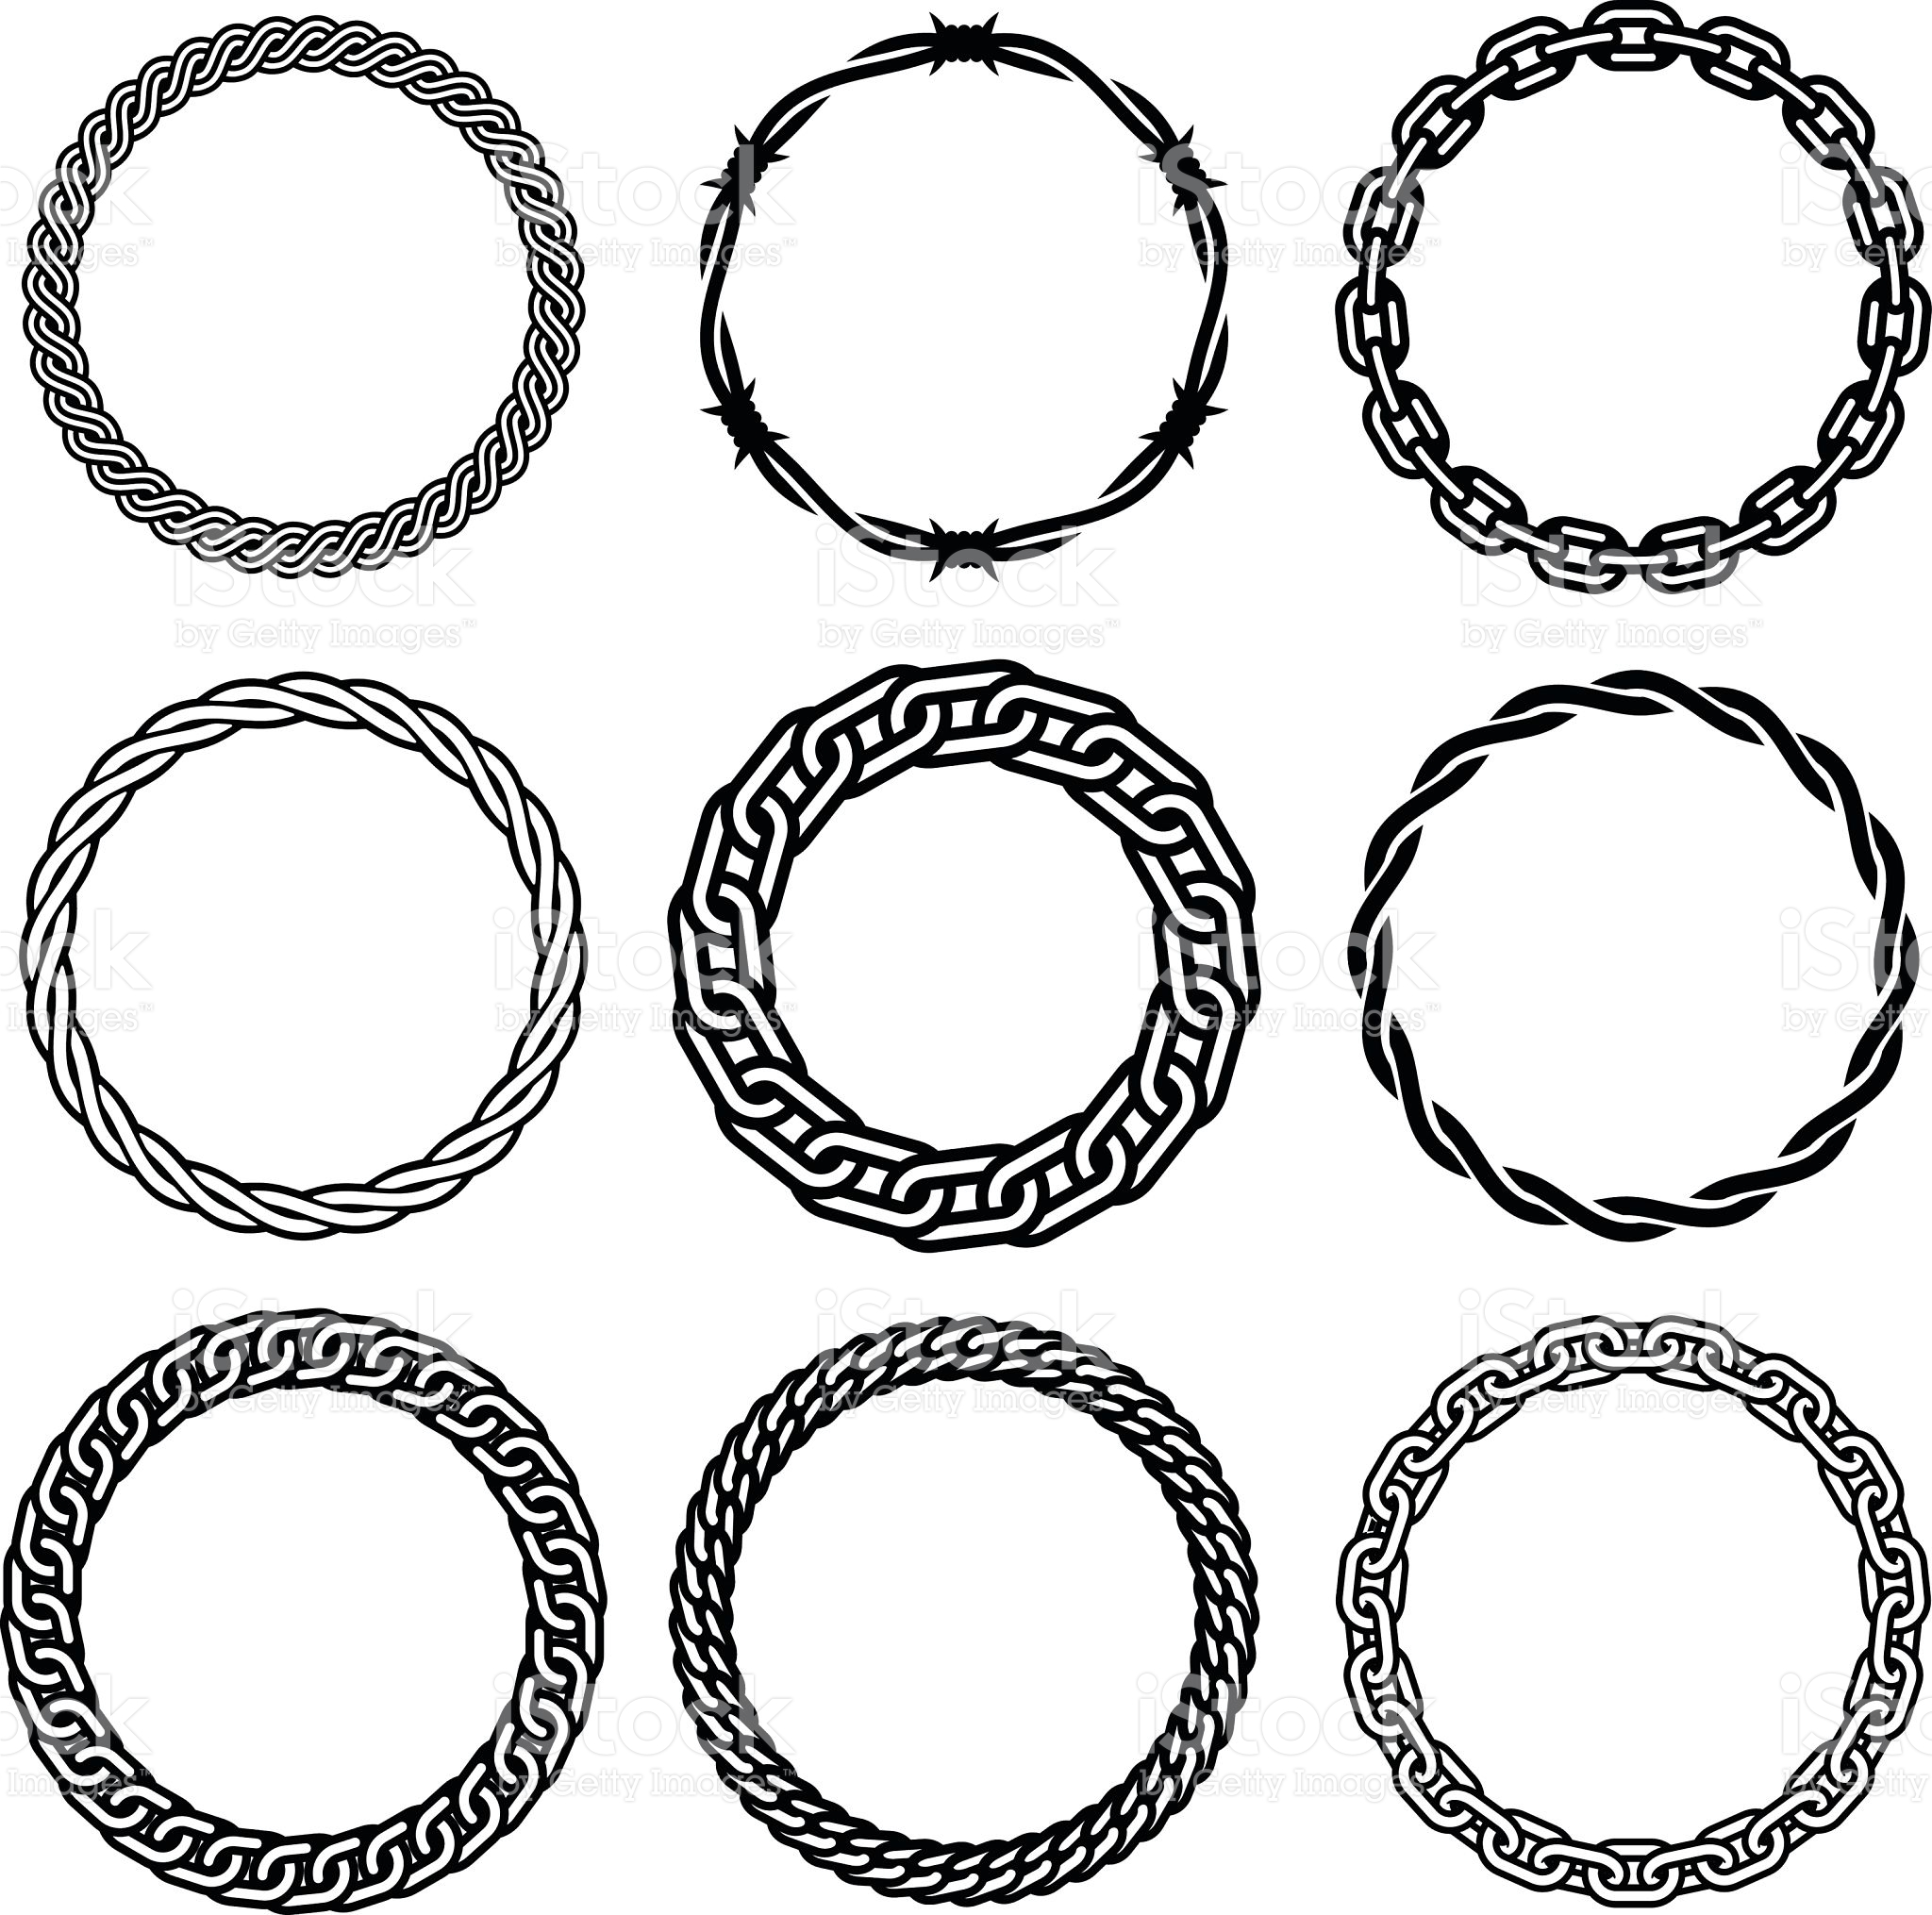 Oval Barbed Wire Vector Graphic